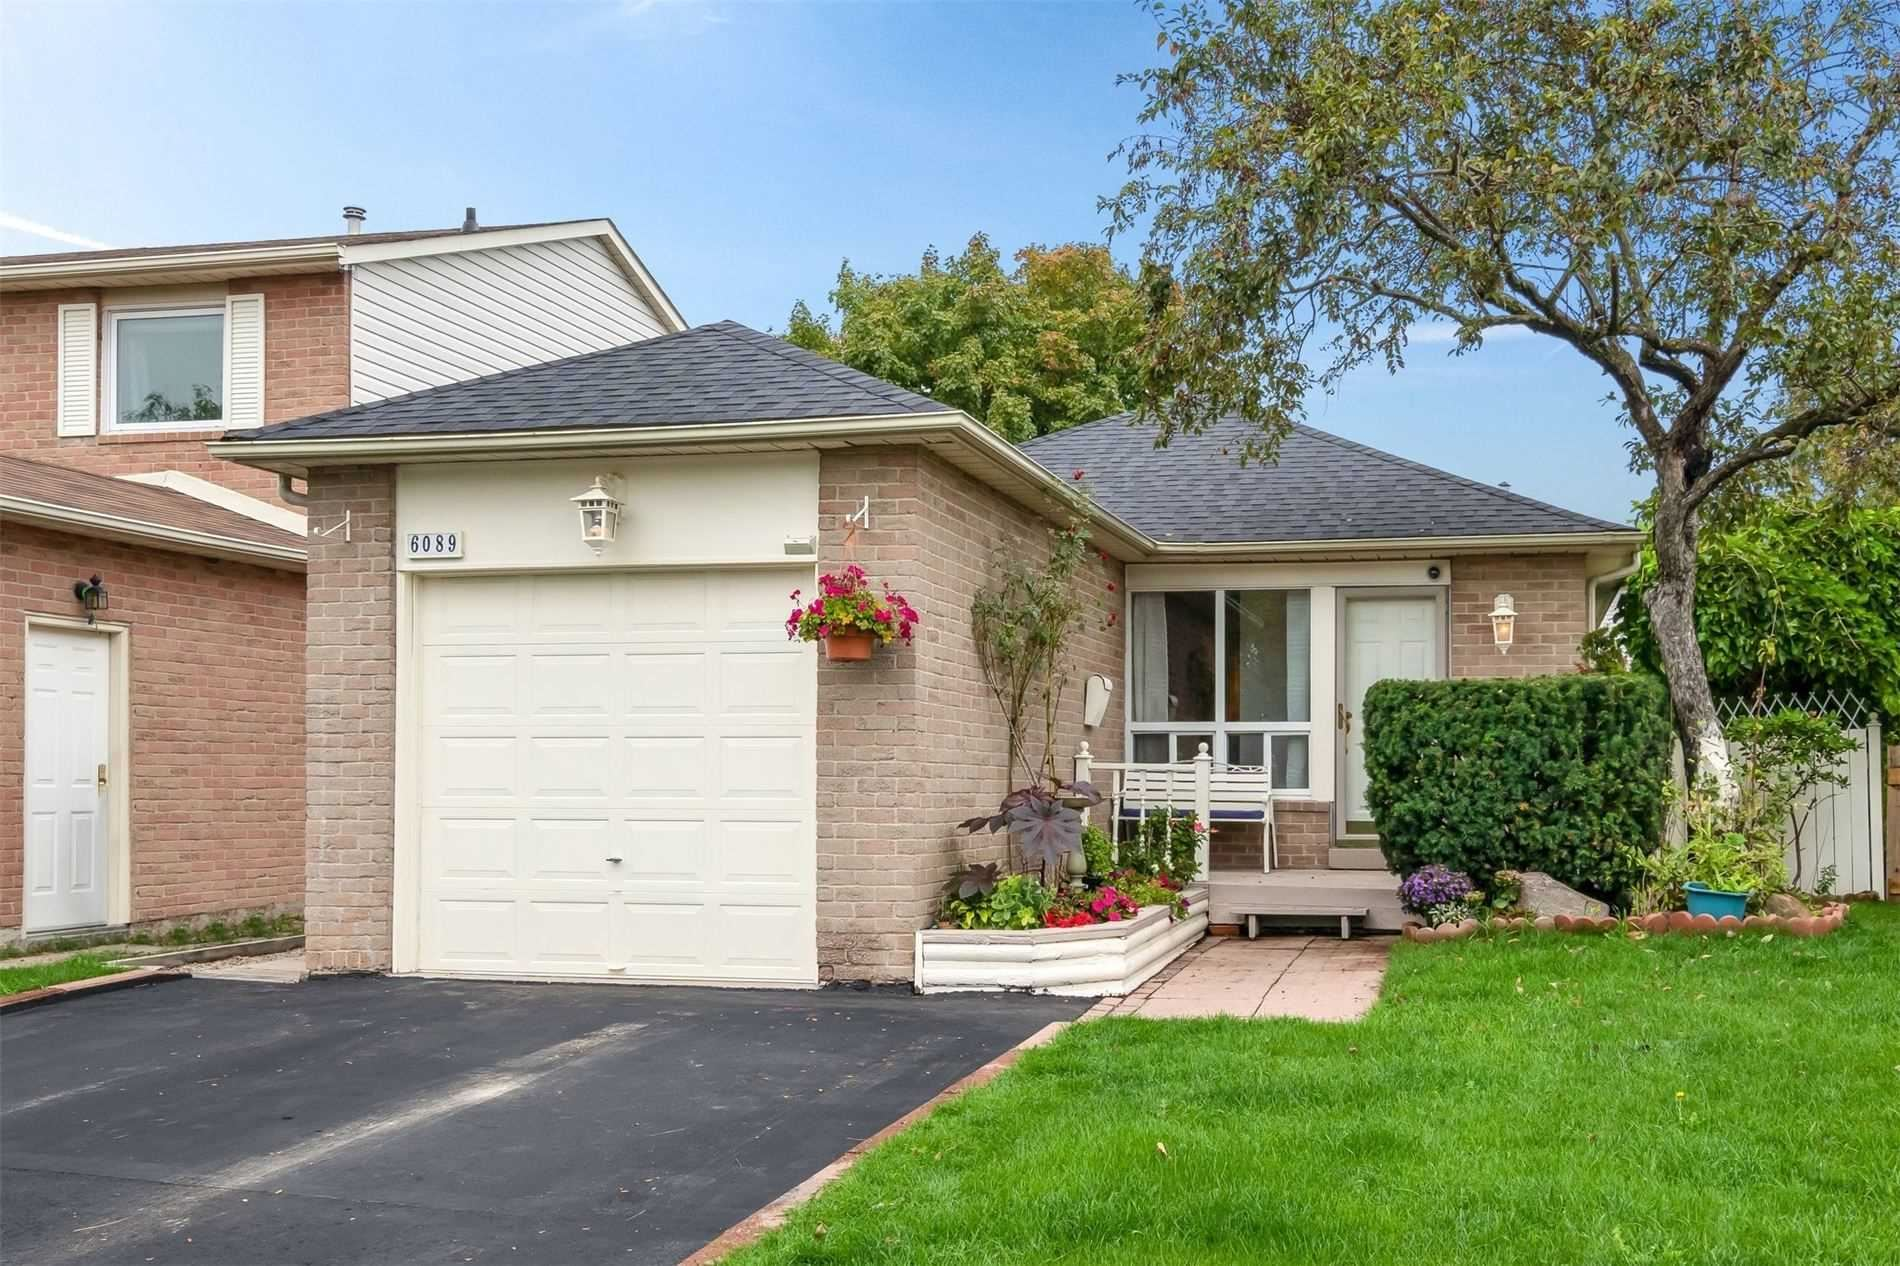 6089 Fullerton Cres, Mississauga, ON L5N3A3 - MLS#: W5397450